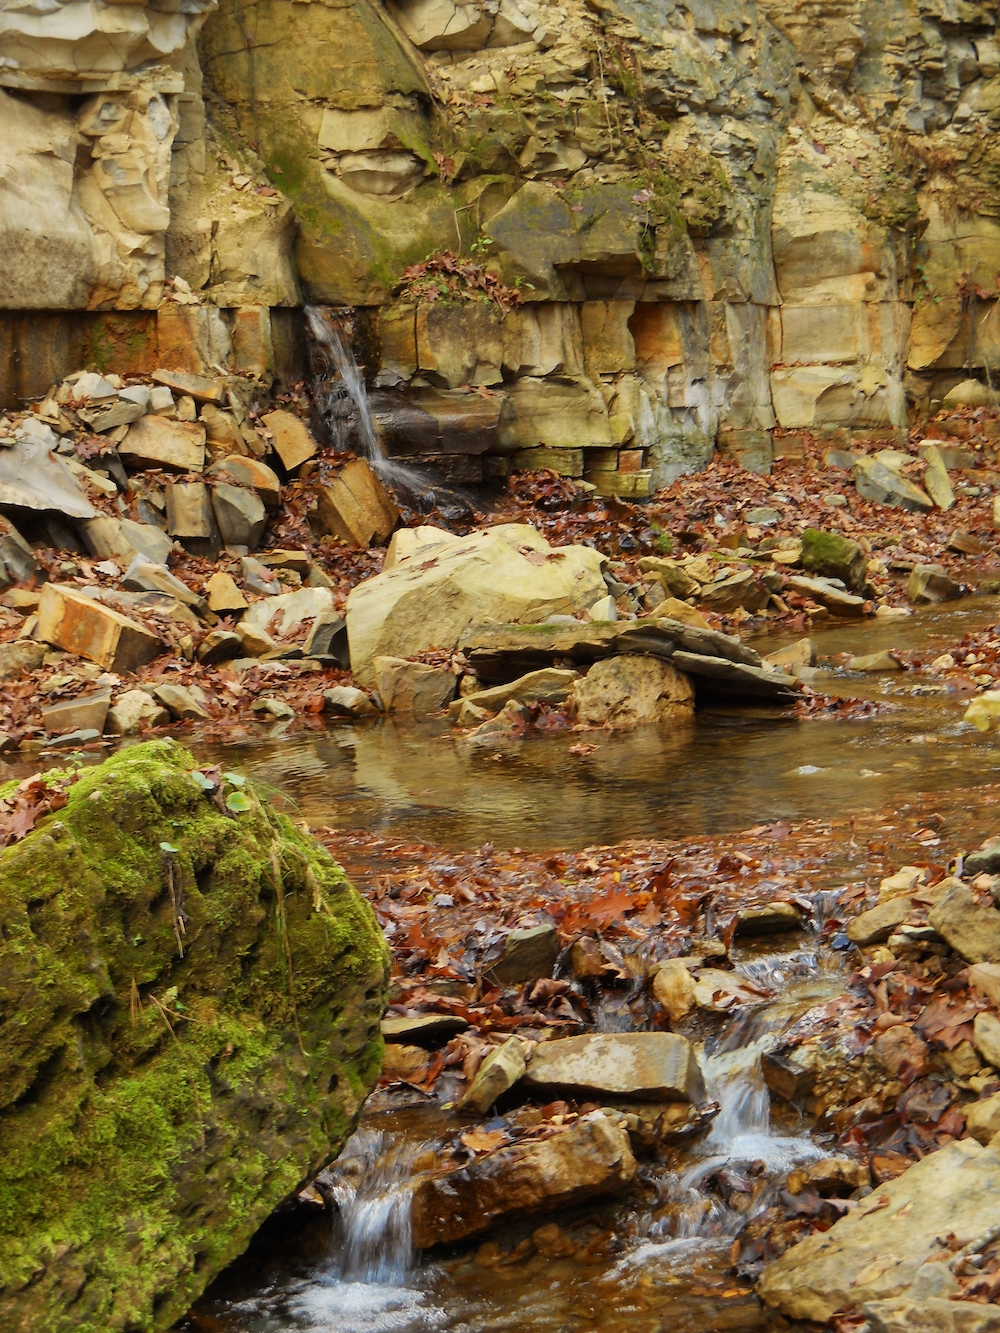 A rocky cliff with a stream running below it.